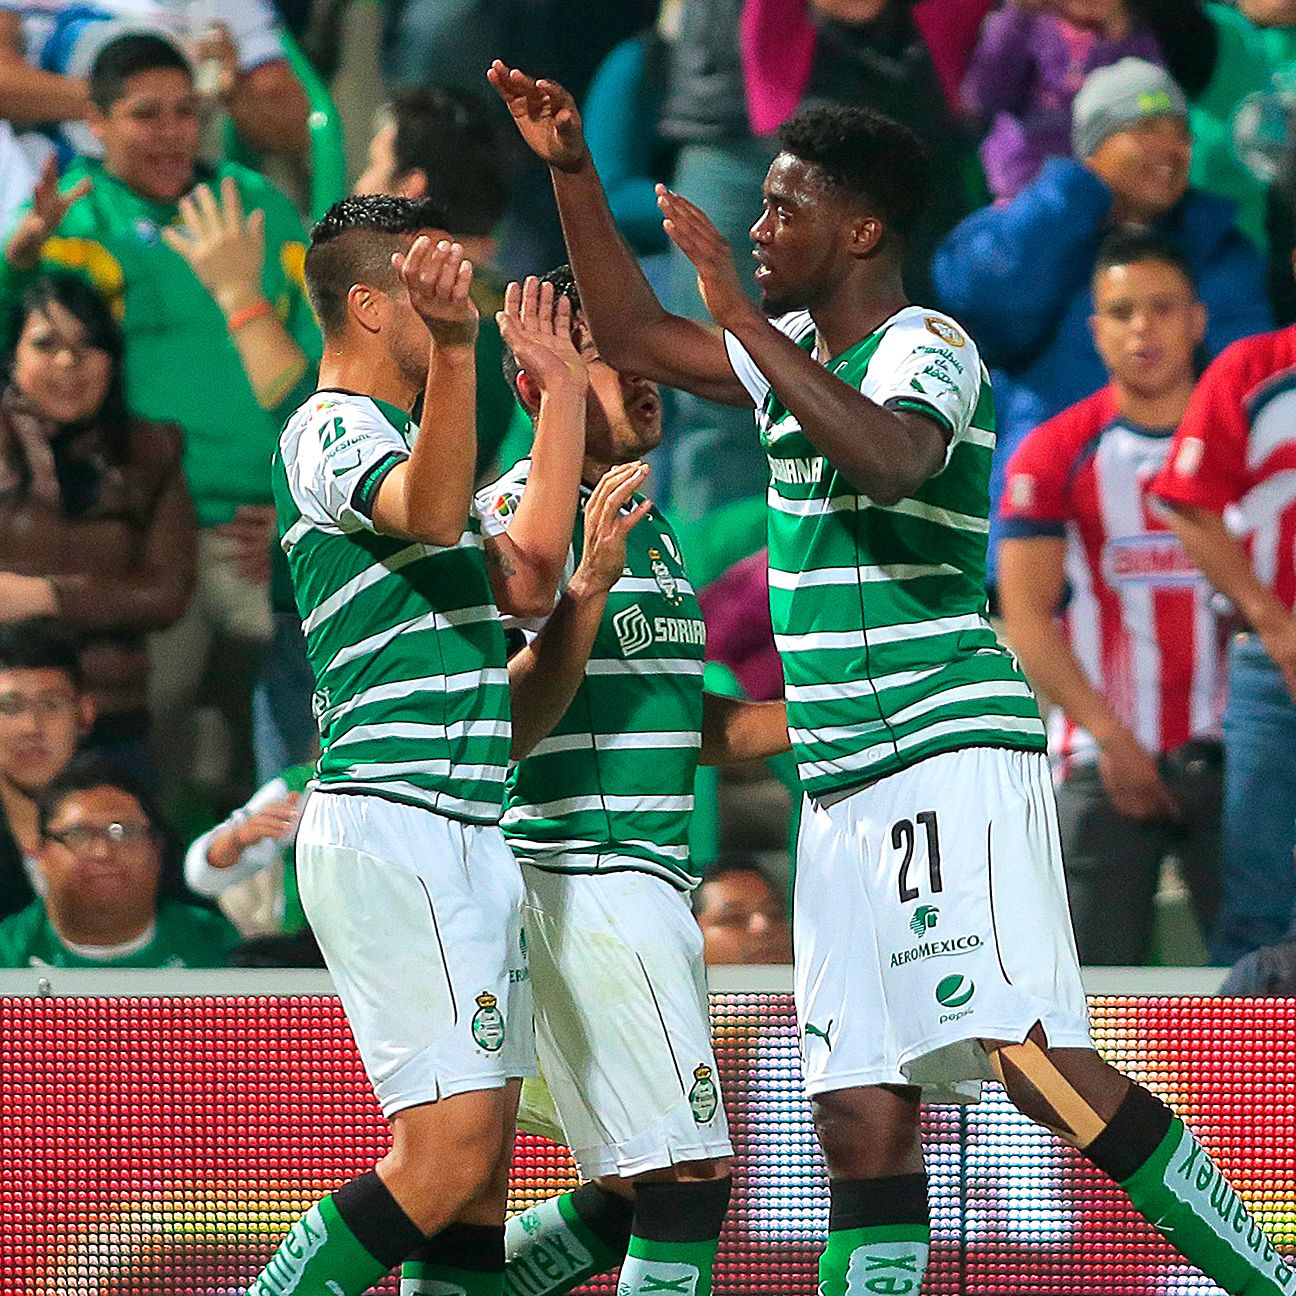 Santos will look to continue their winning ways when they face Toluca.